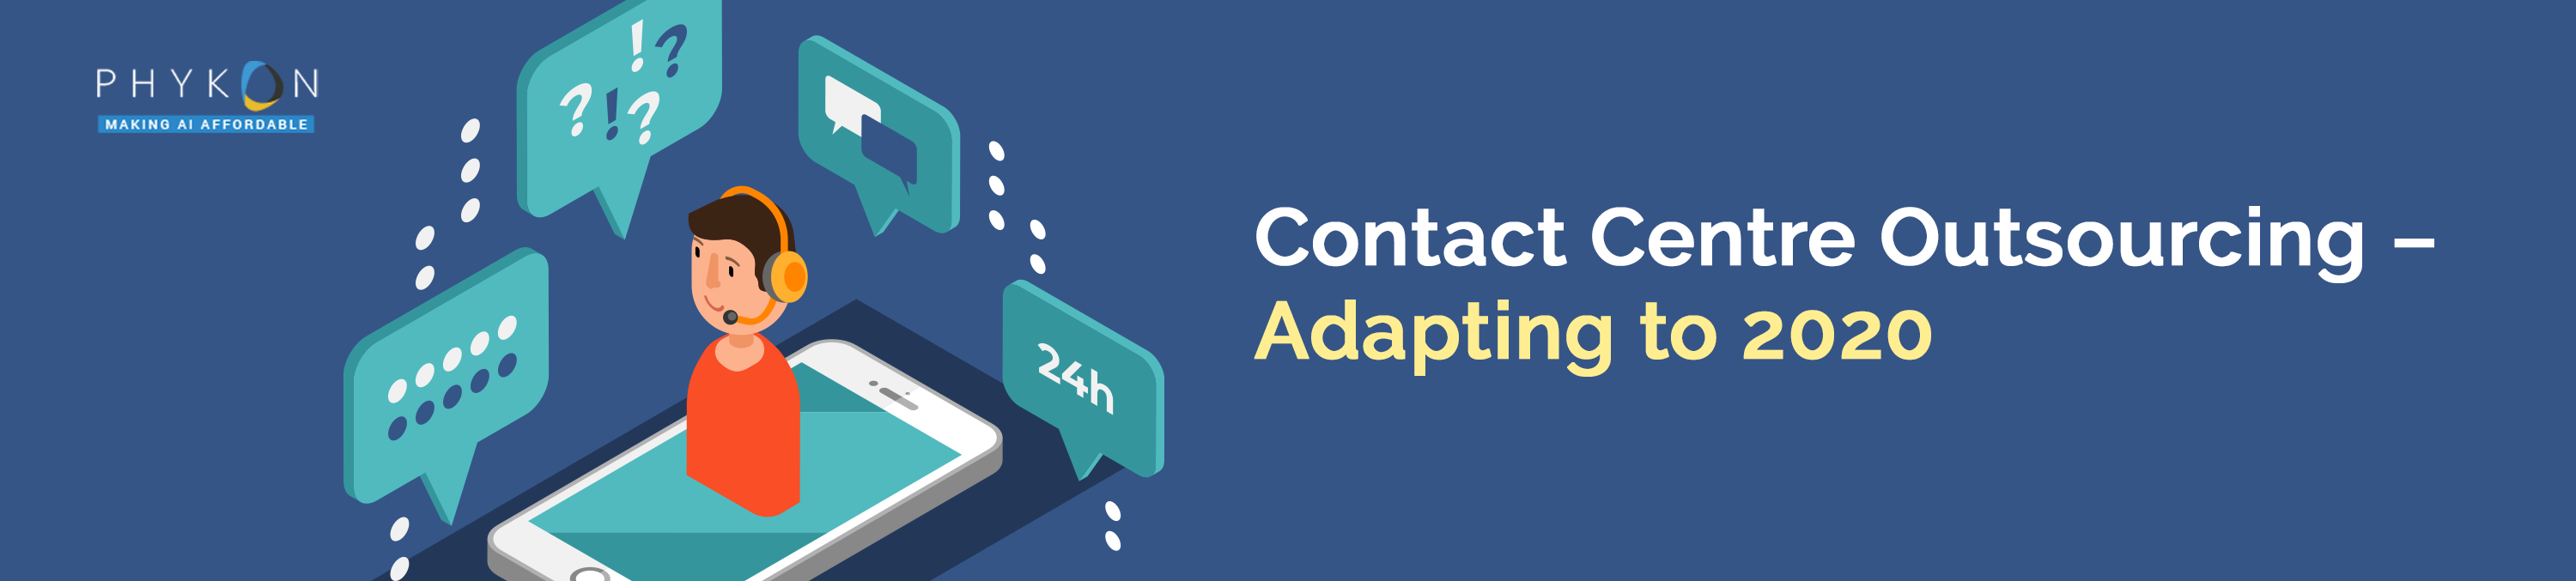 Contact Centre Outsourcing – Adapting to 2020